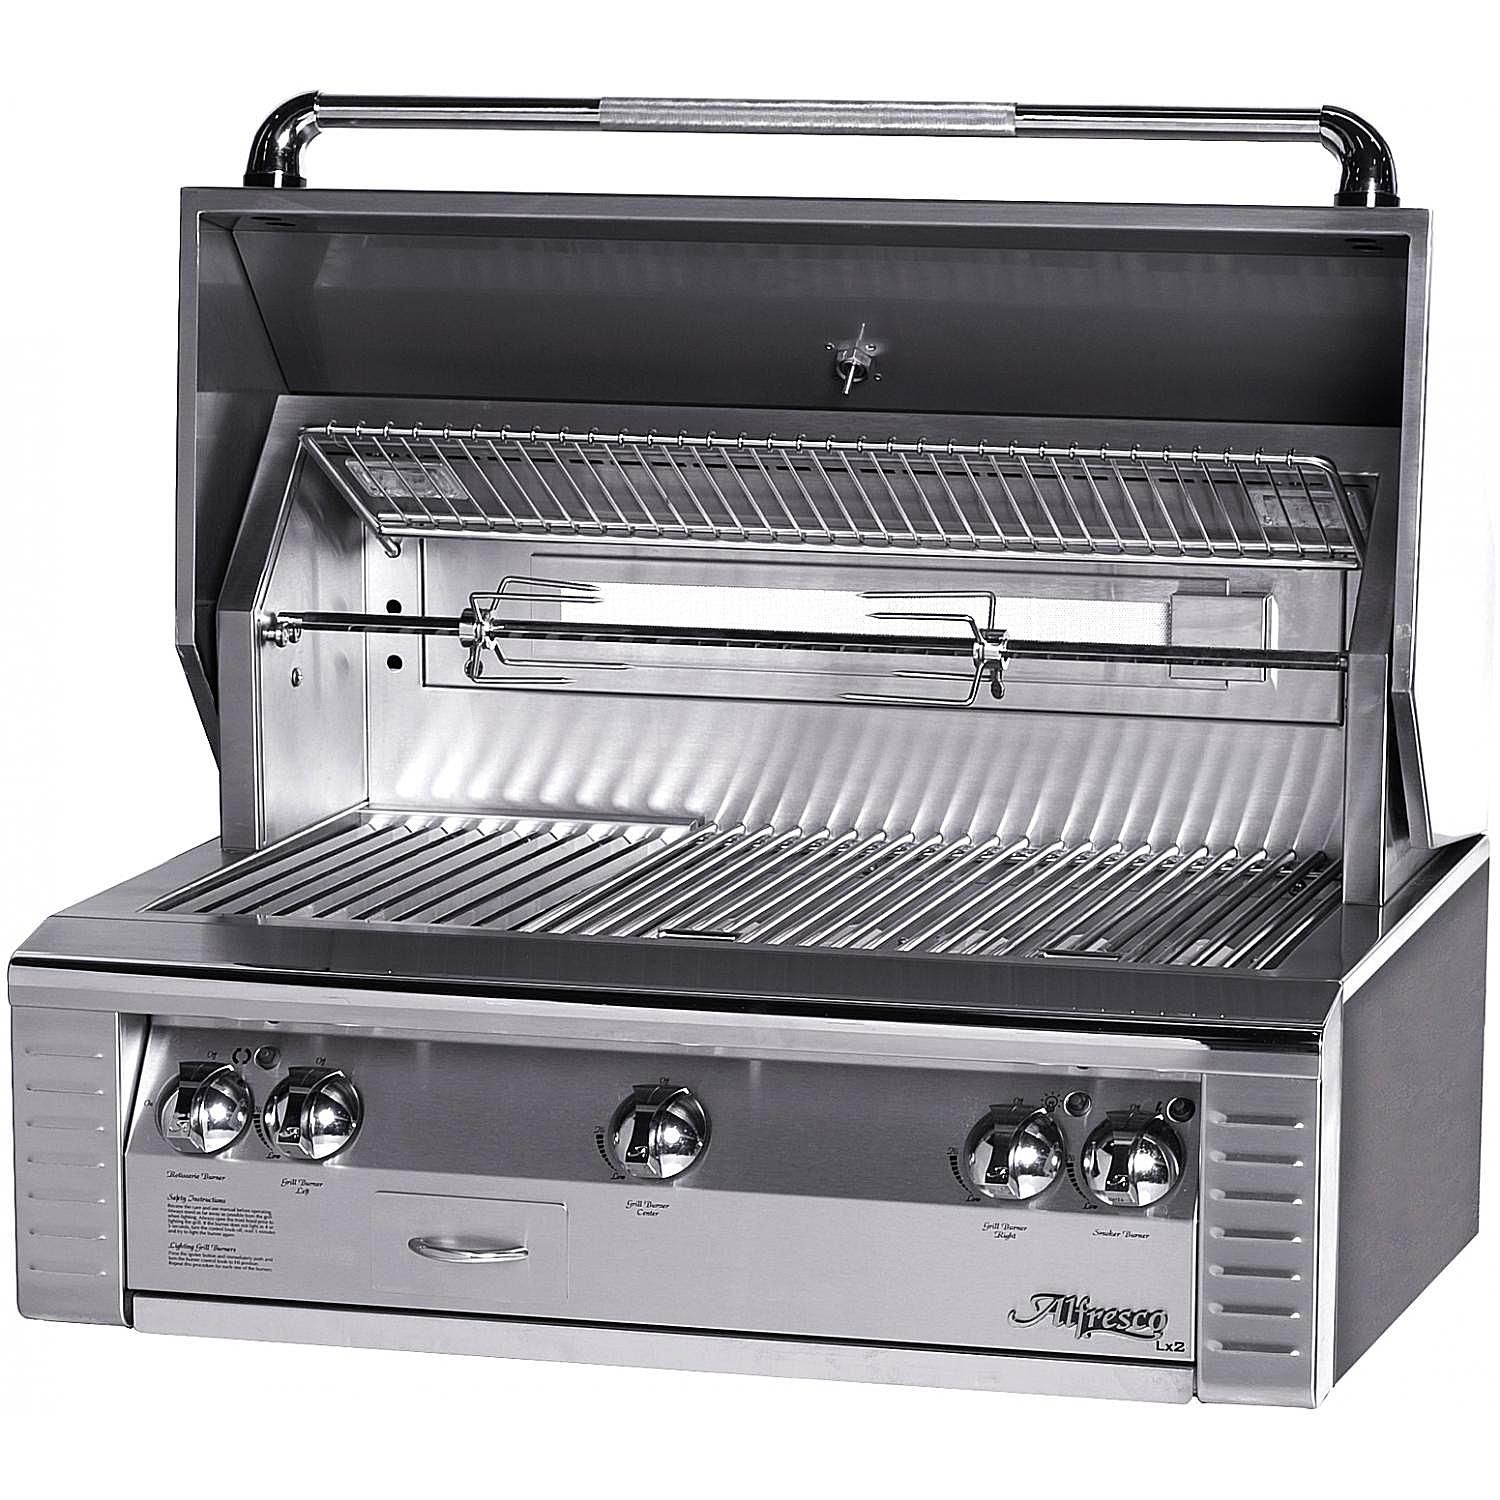 26 Built In Gas Grill Insert ~ Alfresco alx inch gas grill insert review